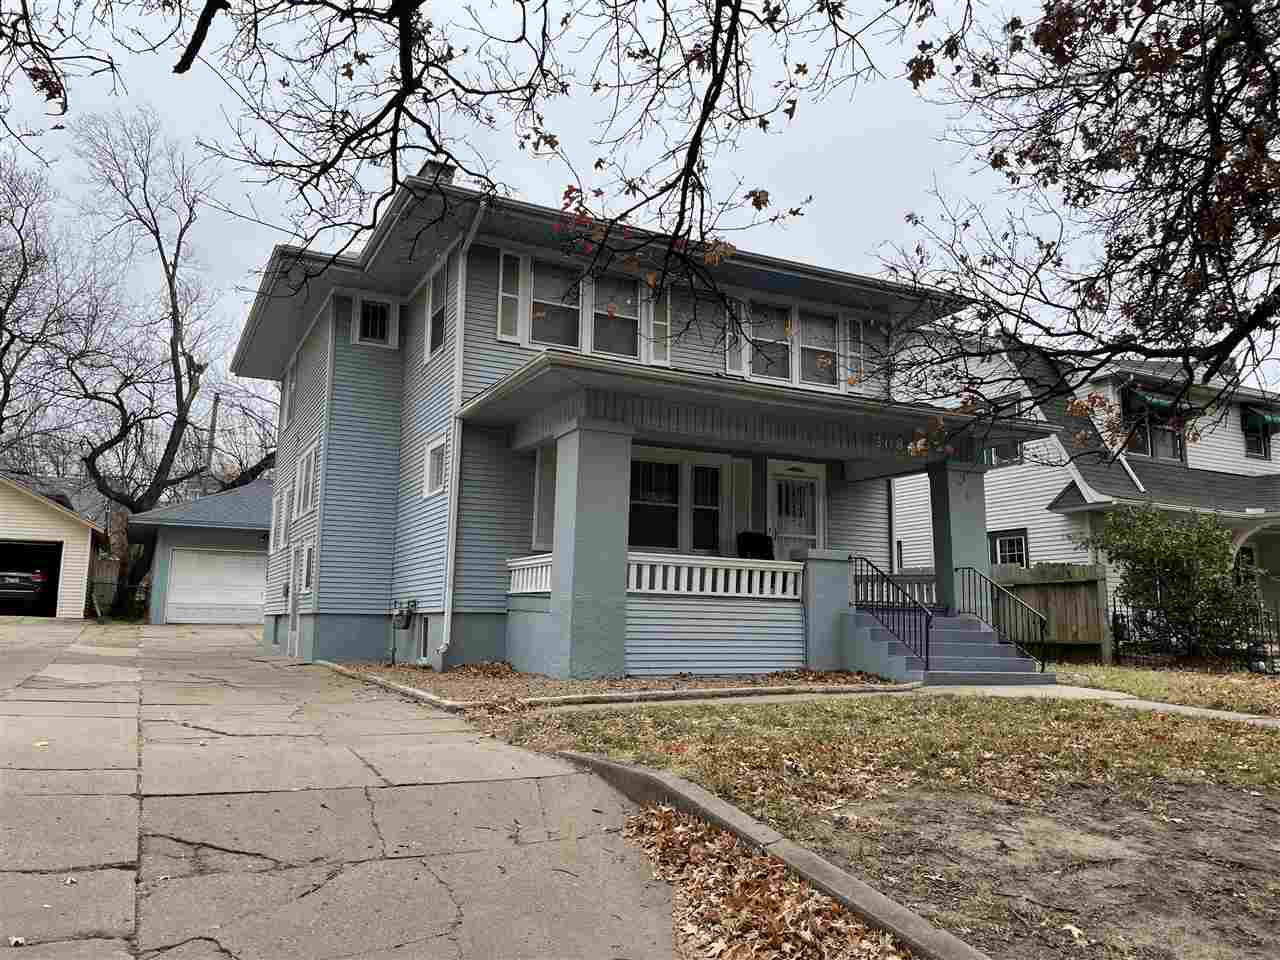 The home you've been looking for to make your own! This home does need TLC but won't take much to sp